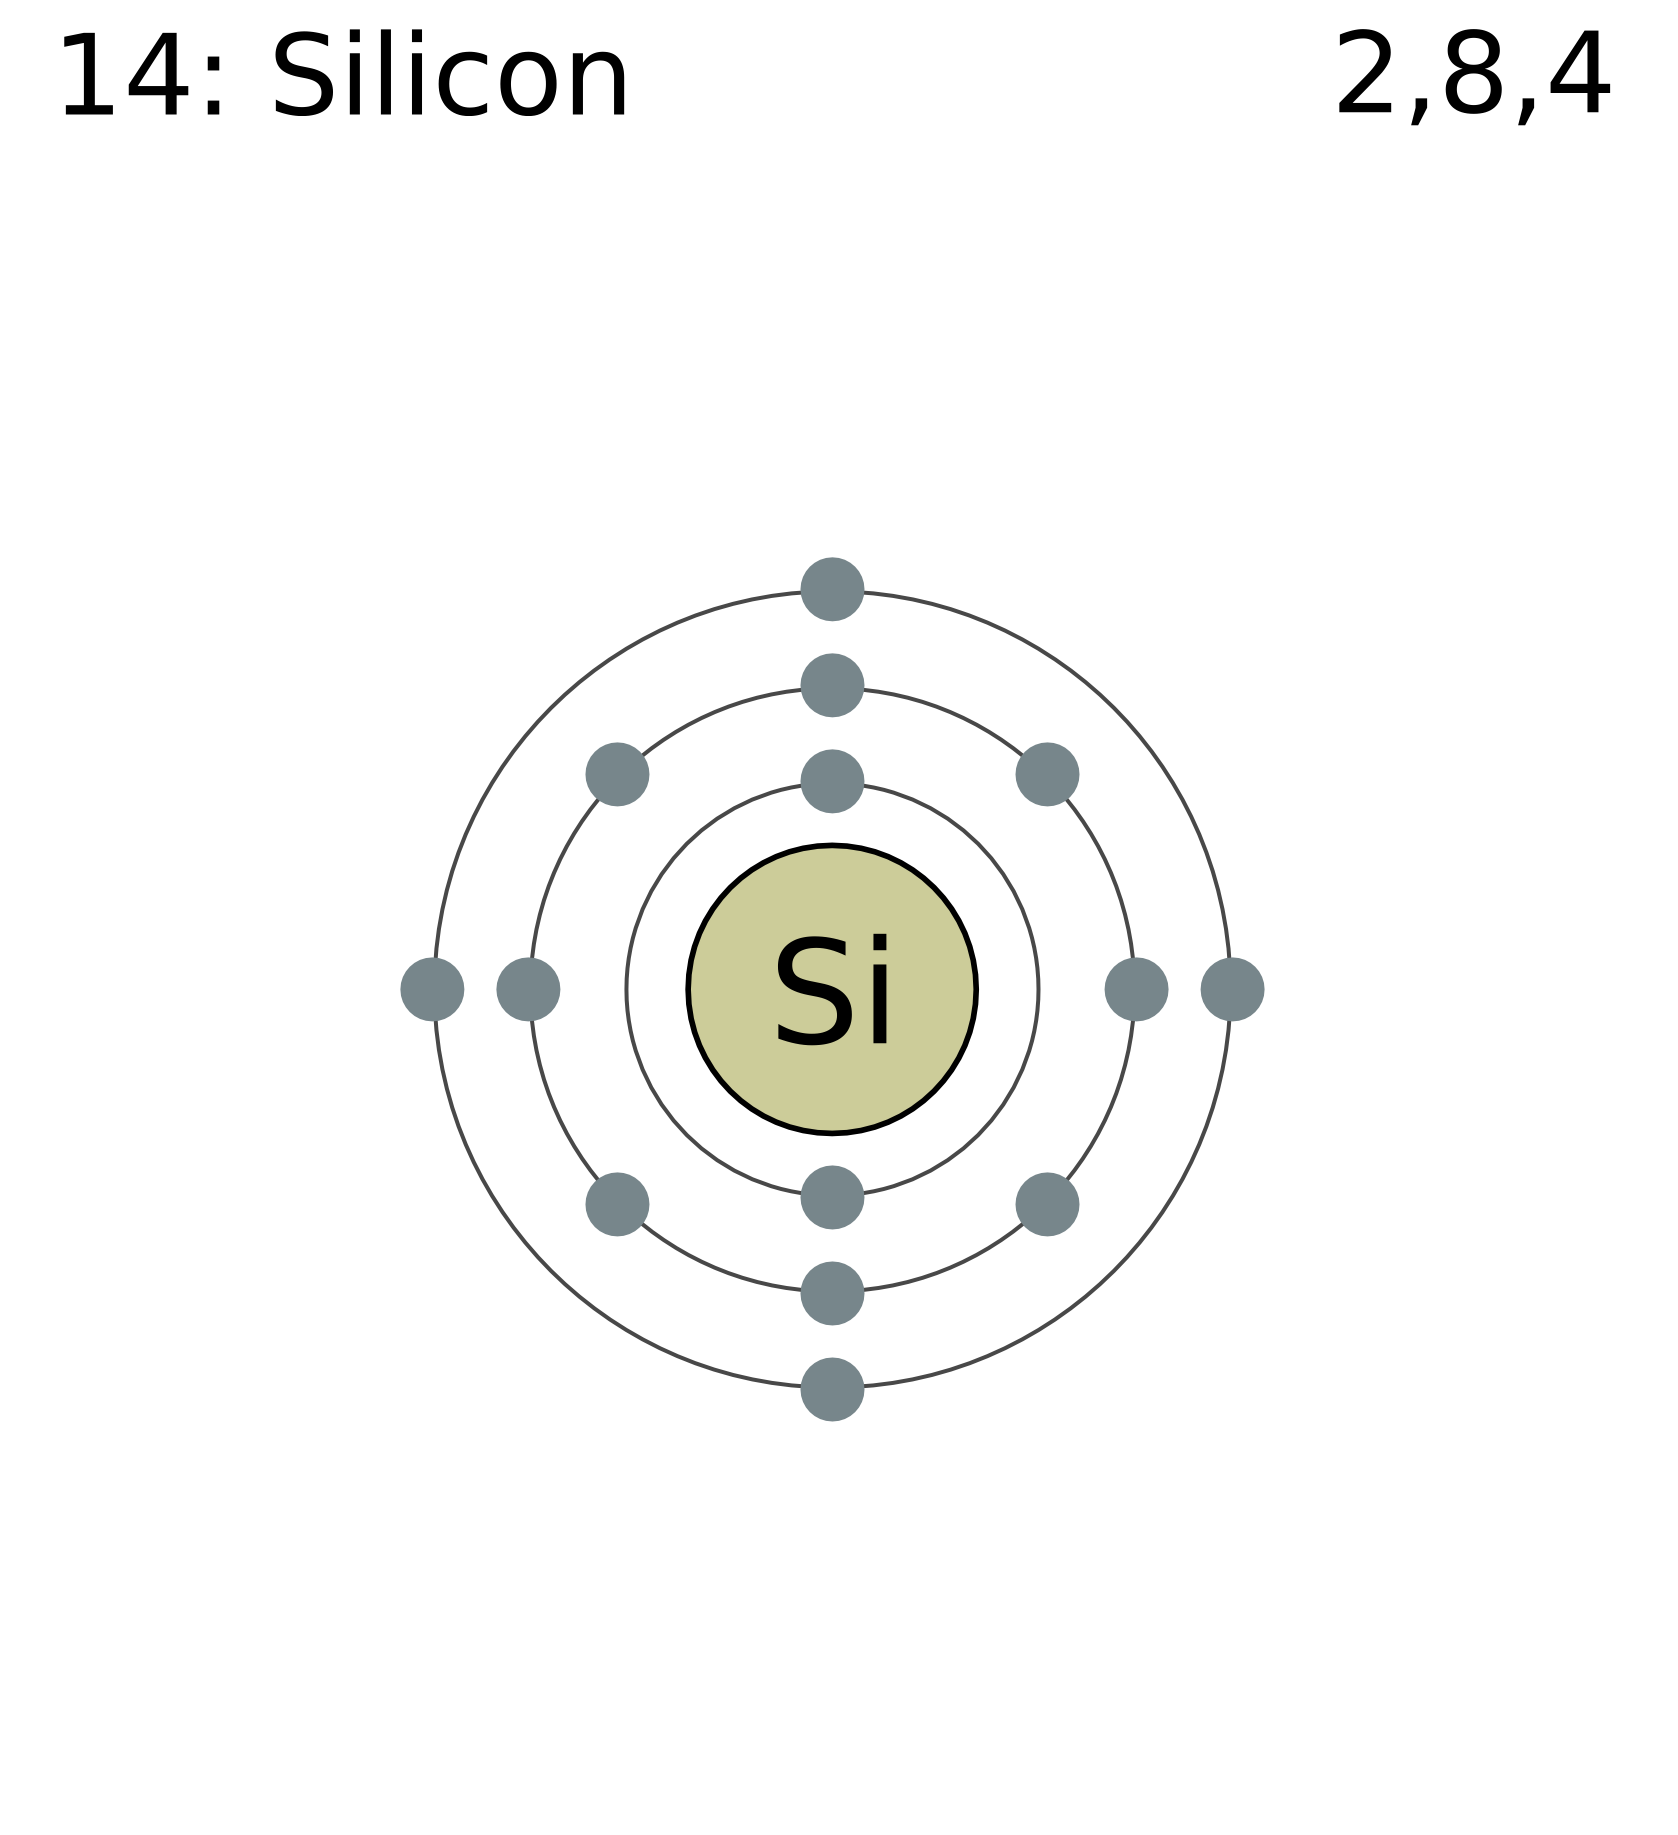 silicon shell diagram file:electron shell 014 silicon.png - wikimedia commons secure shell diagram #1